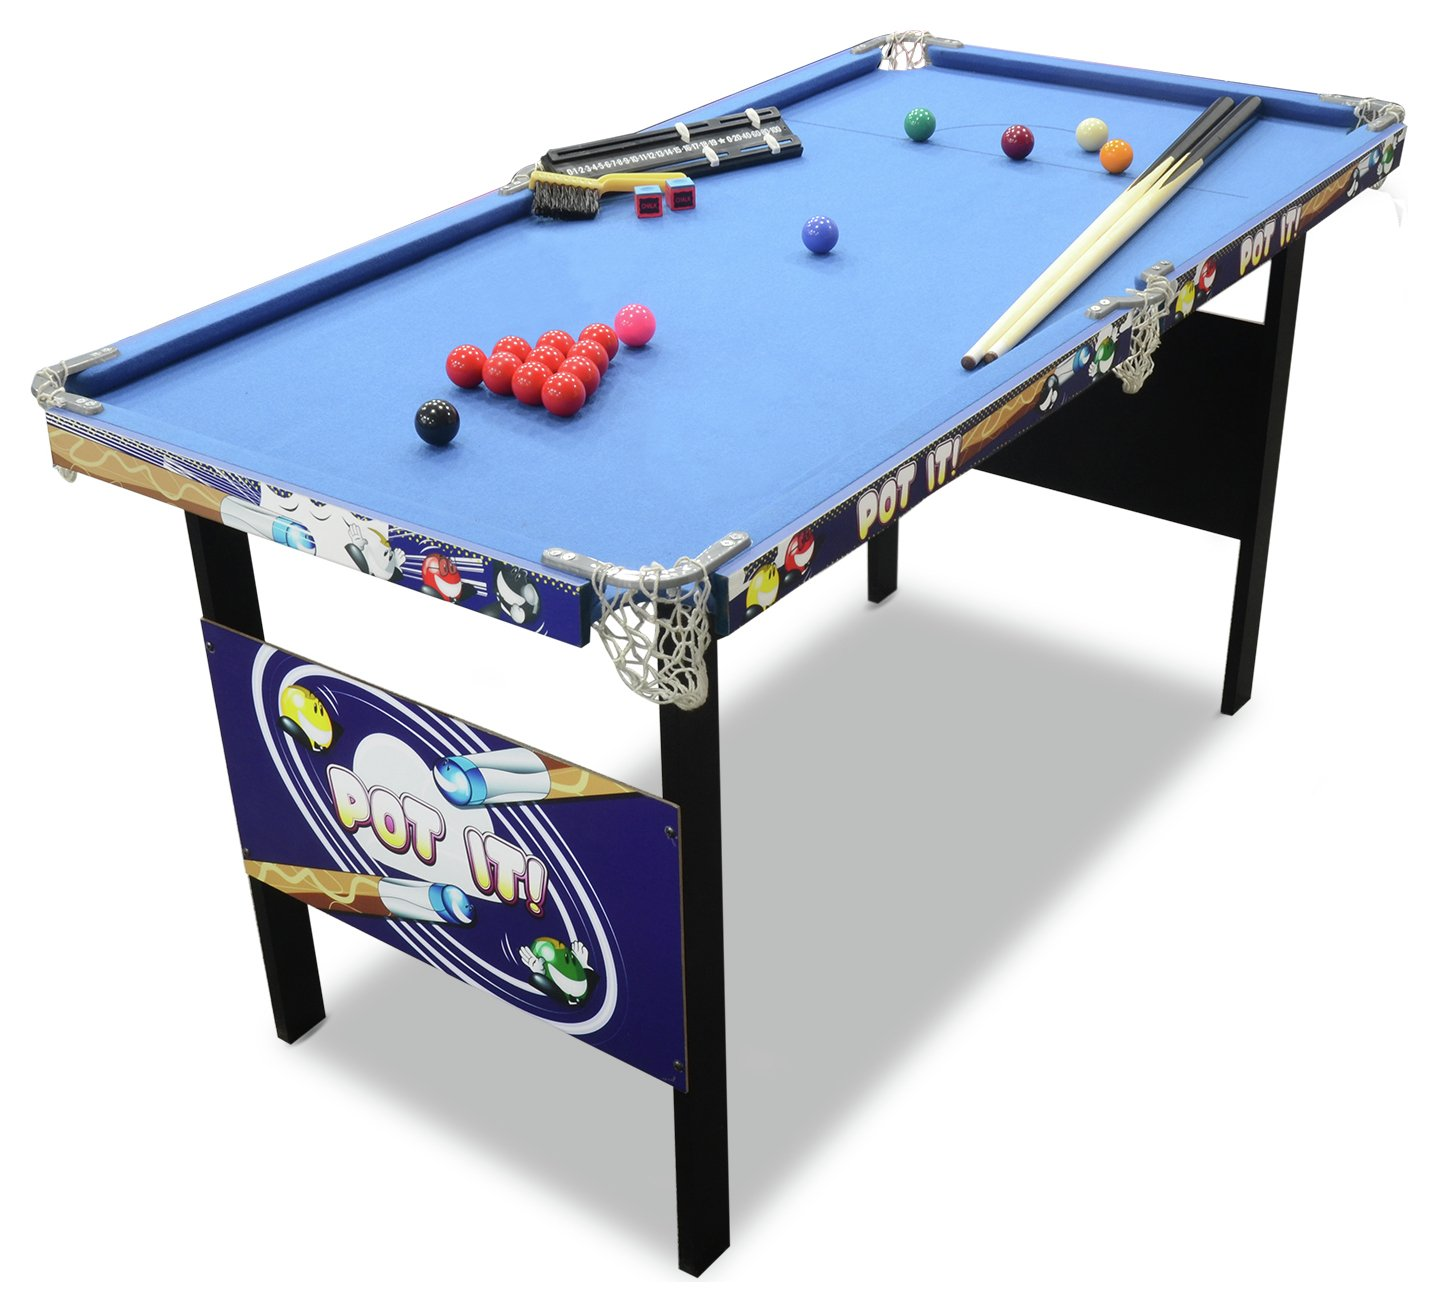 Sale On Chad Valley 4ft Snooker Pool Game Table Chad